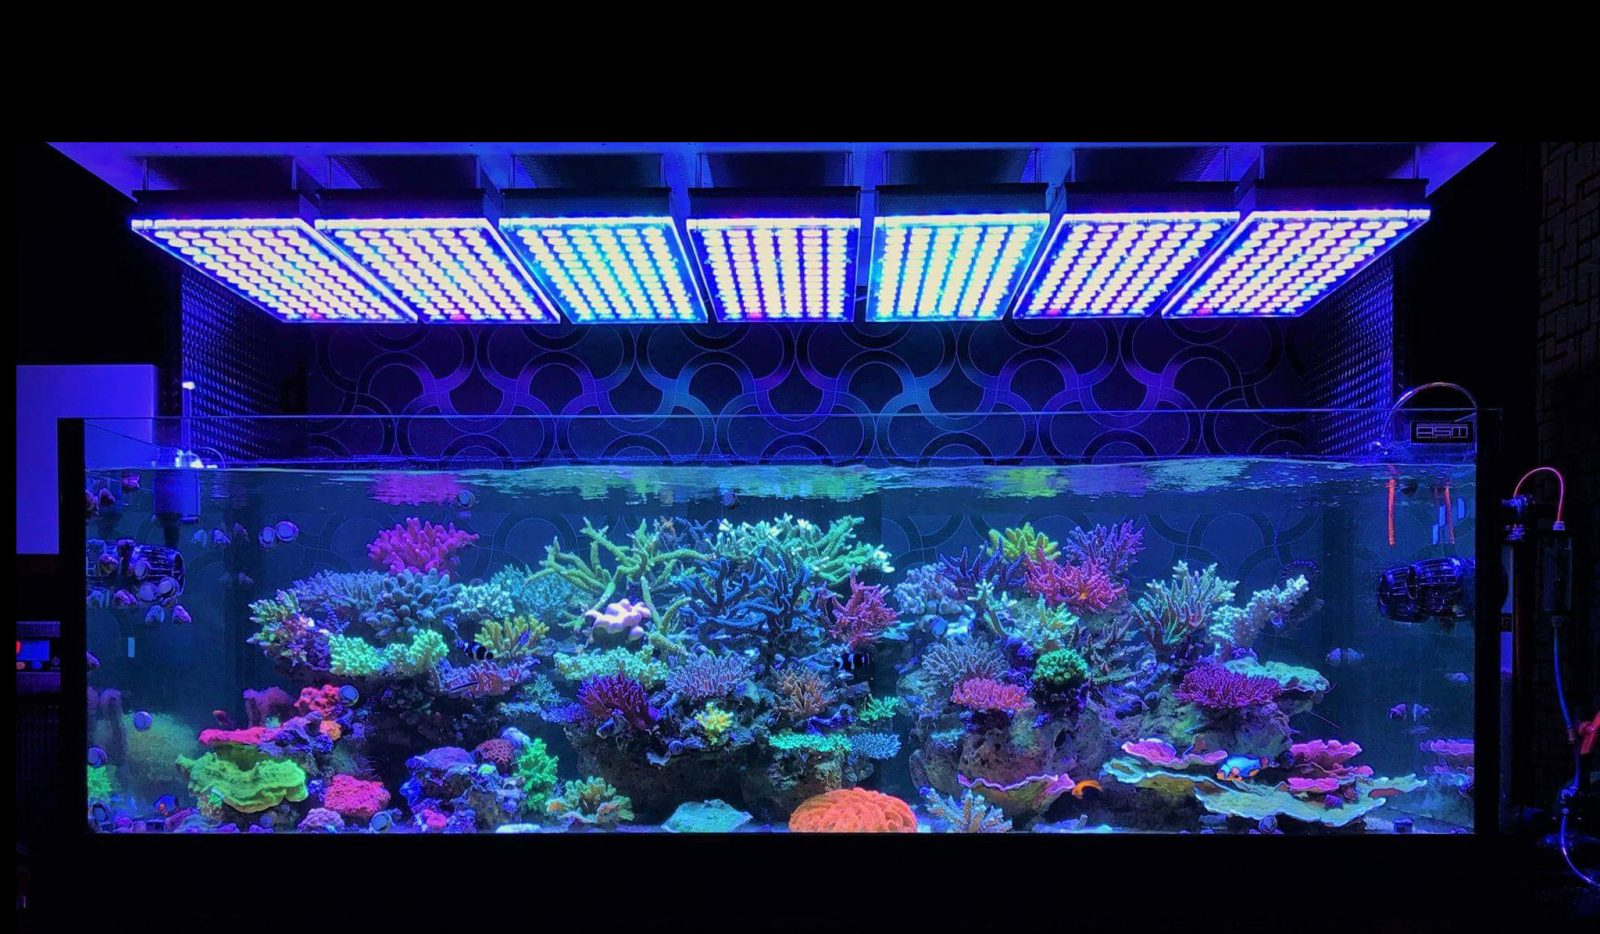 light-Orphek-Atlantik-V4-Reef Aquarium-LED-